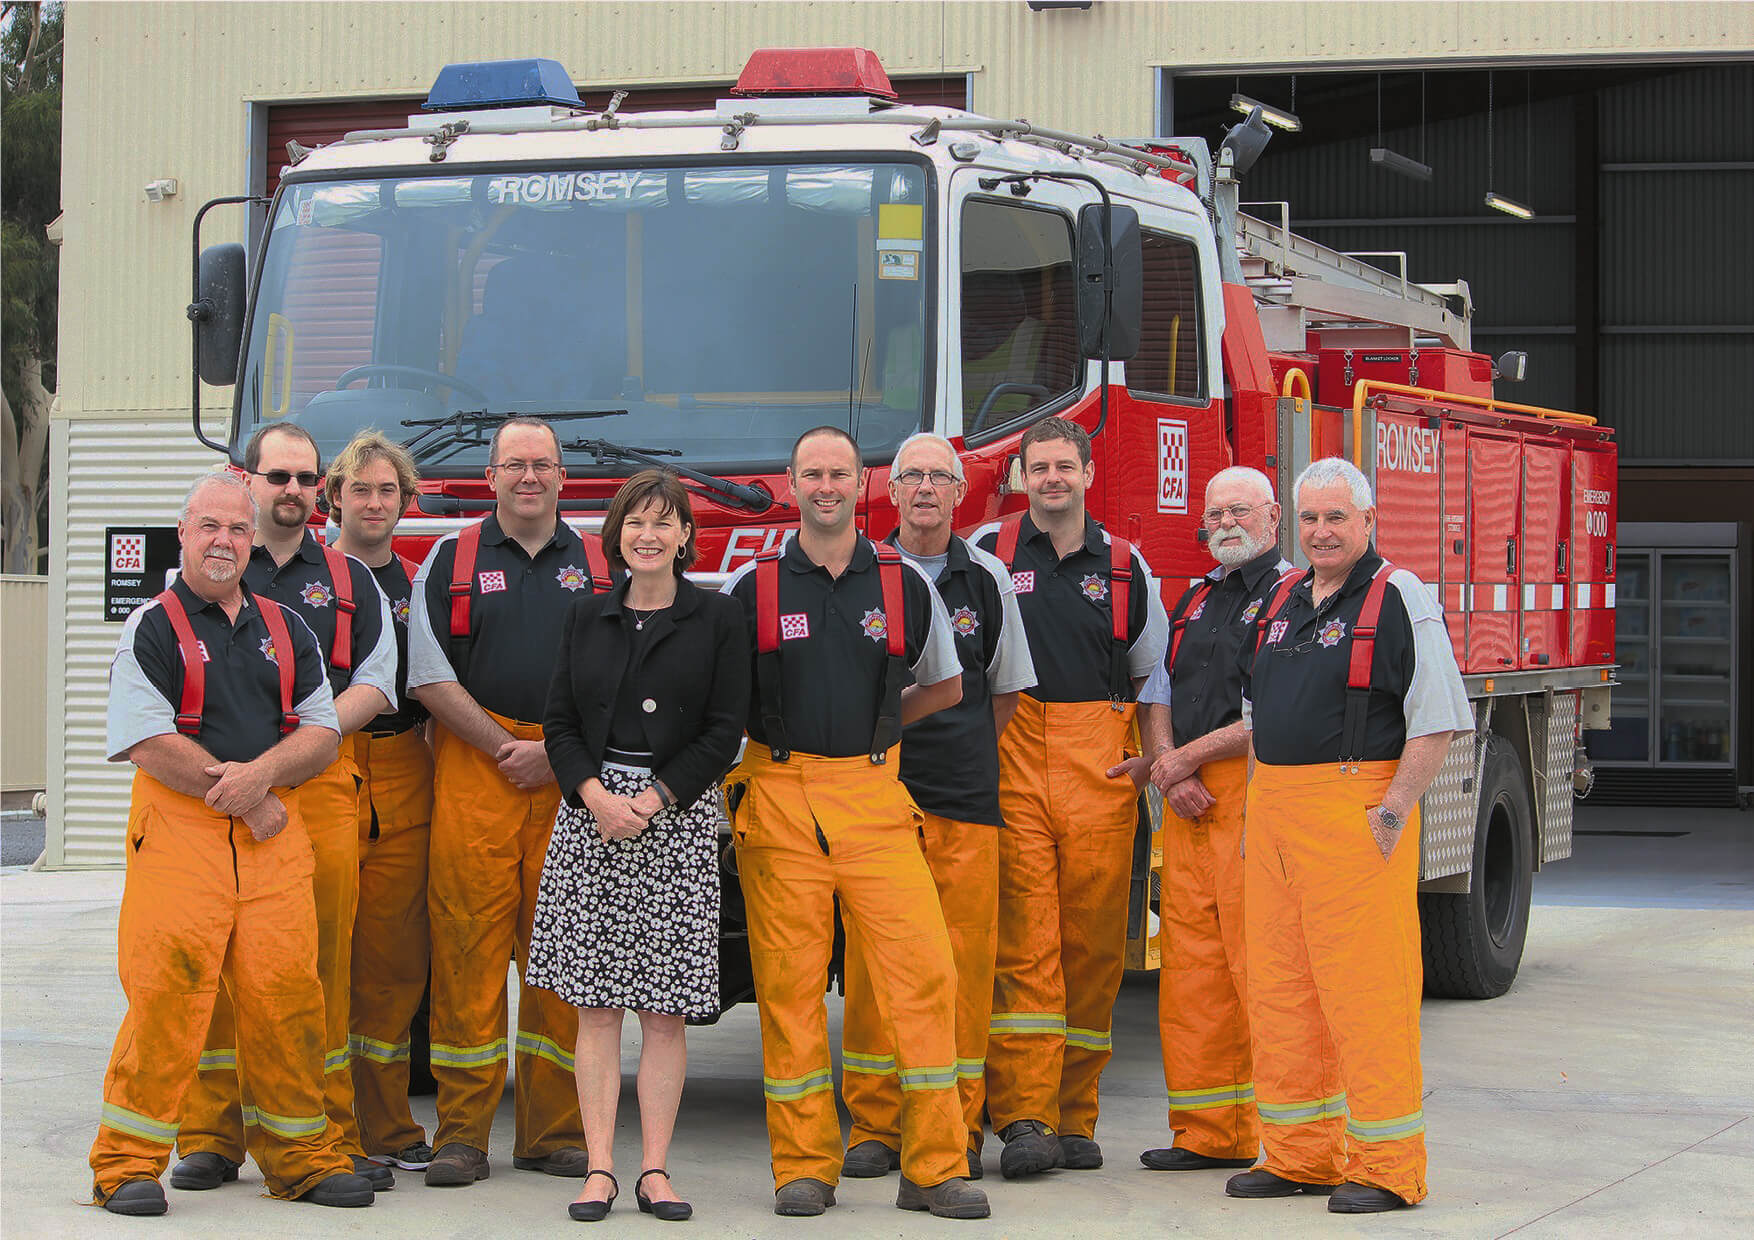 personalised garments for a fire brigade